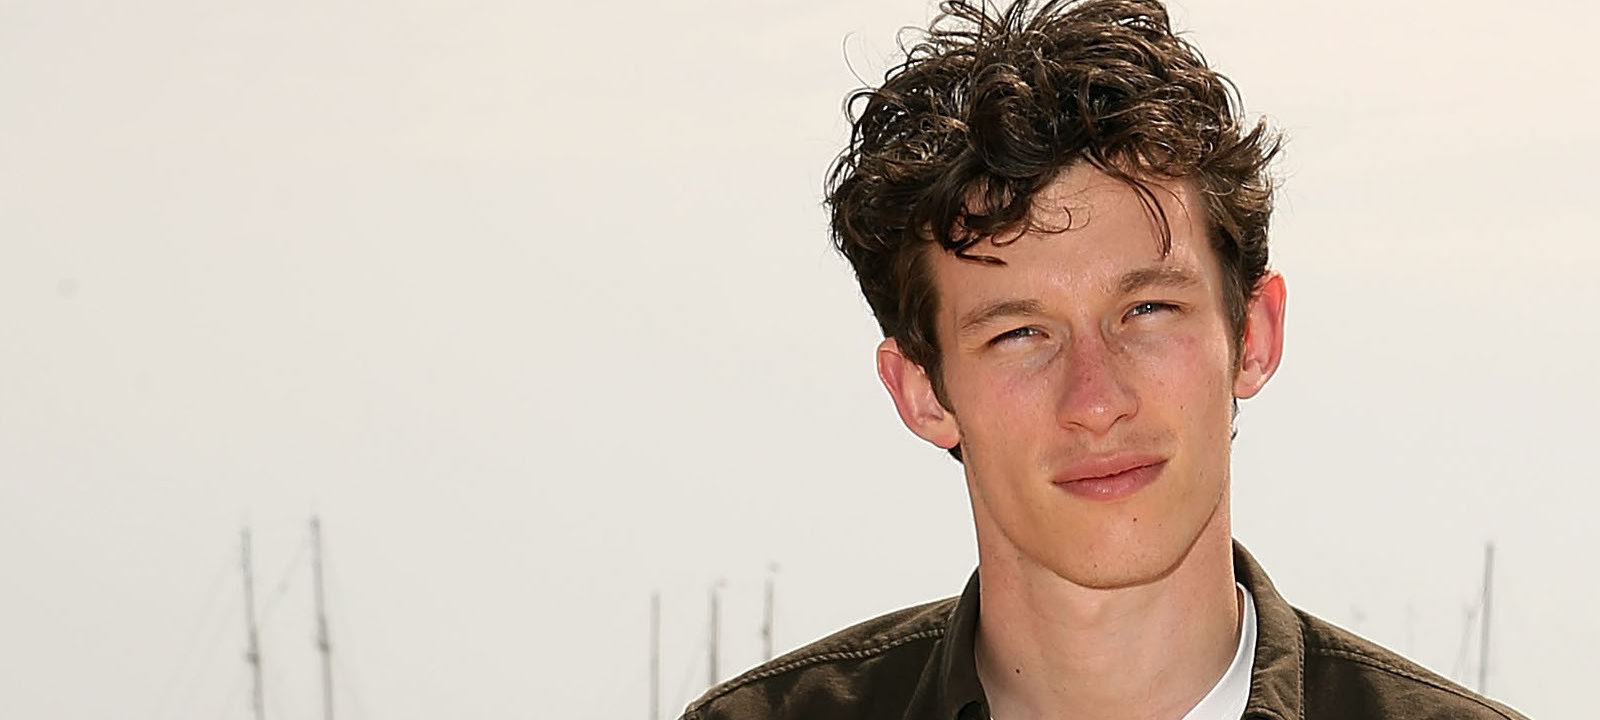 Callum Turner at Cannes in 2014